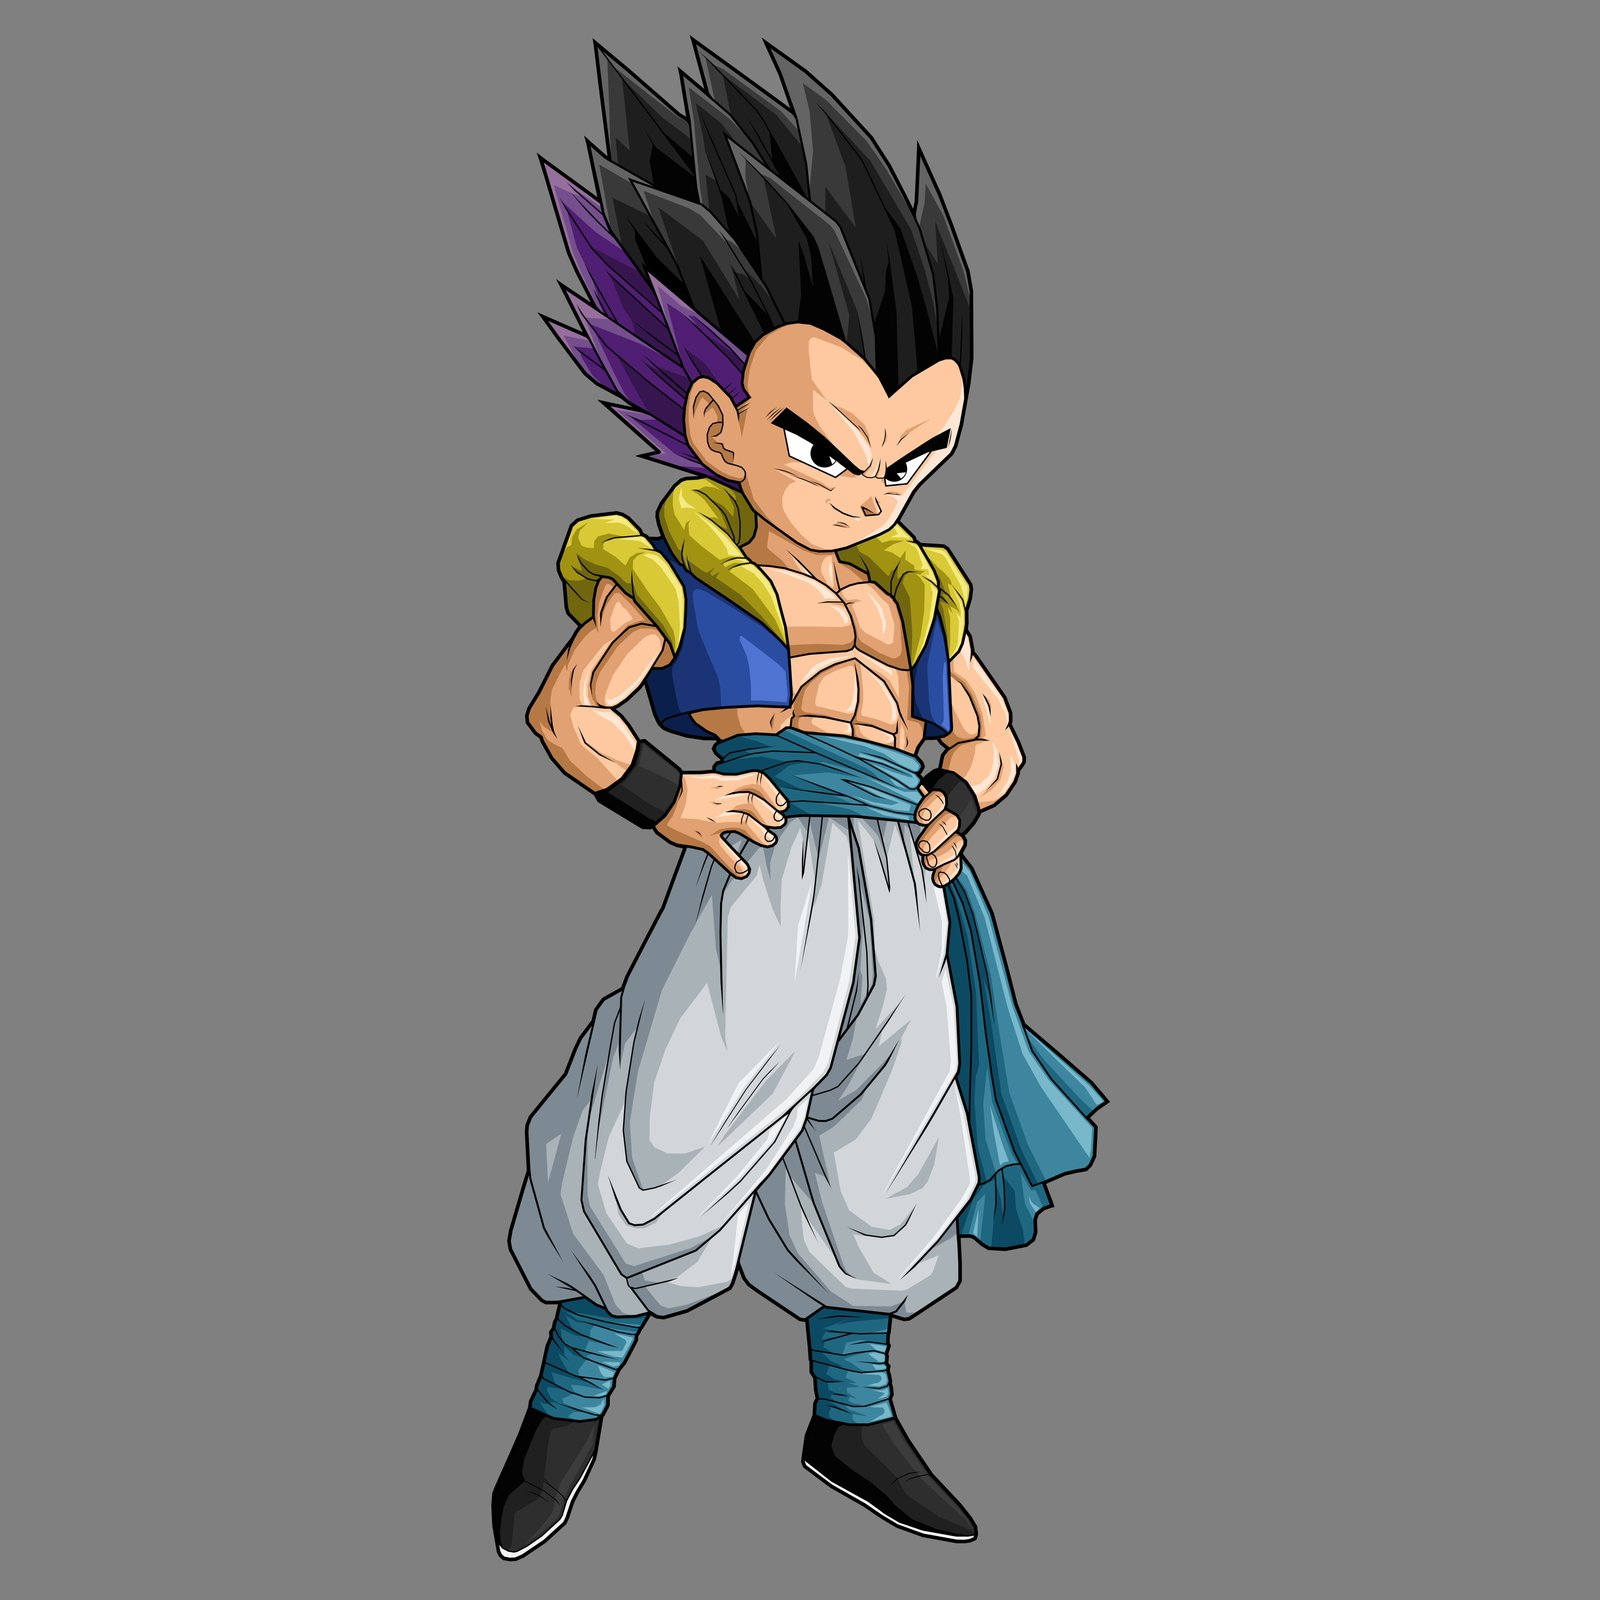 gotenks - dragon ball - image  843775